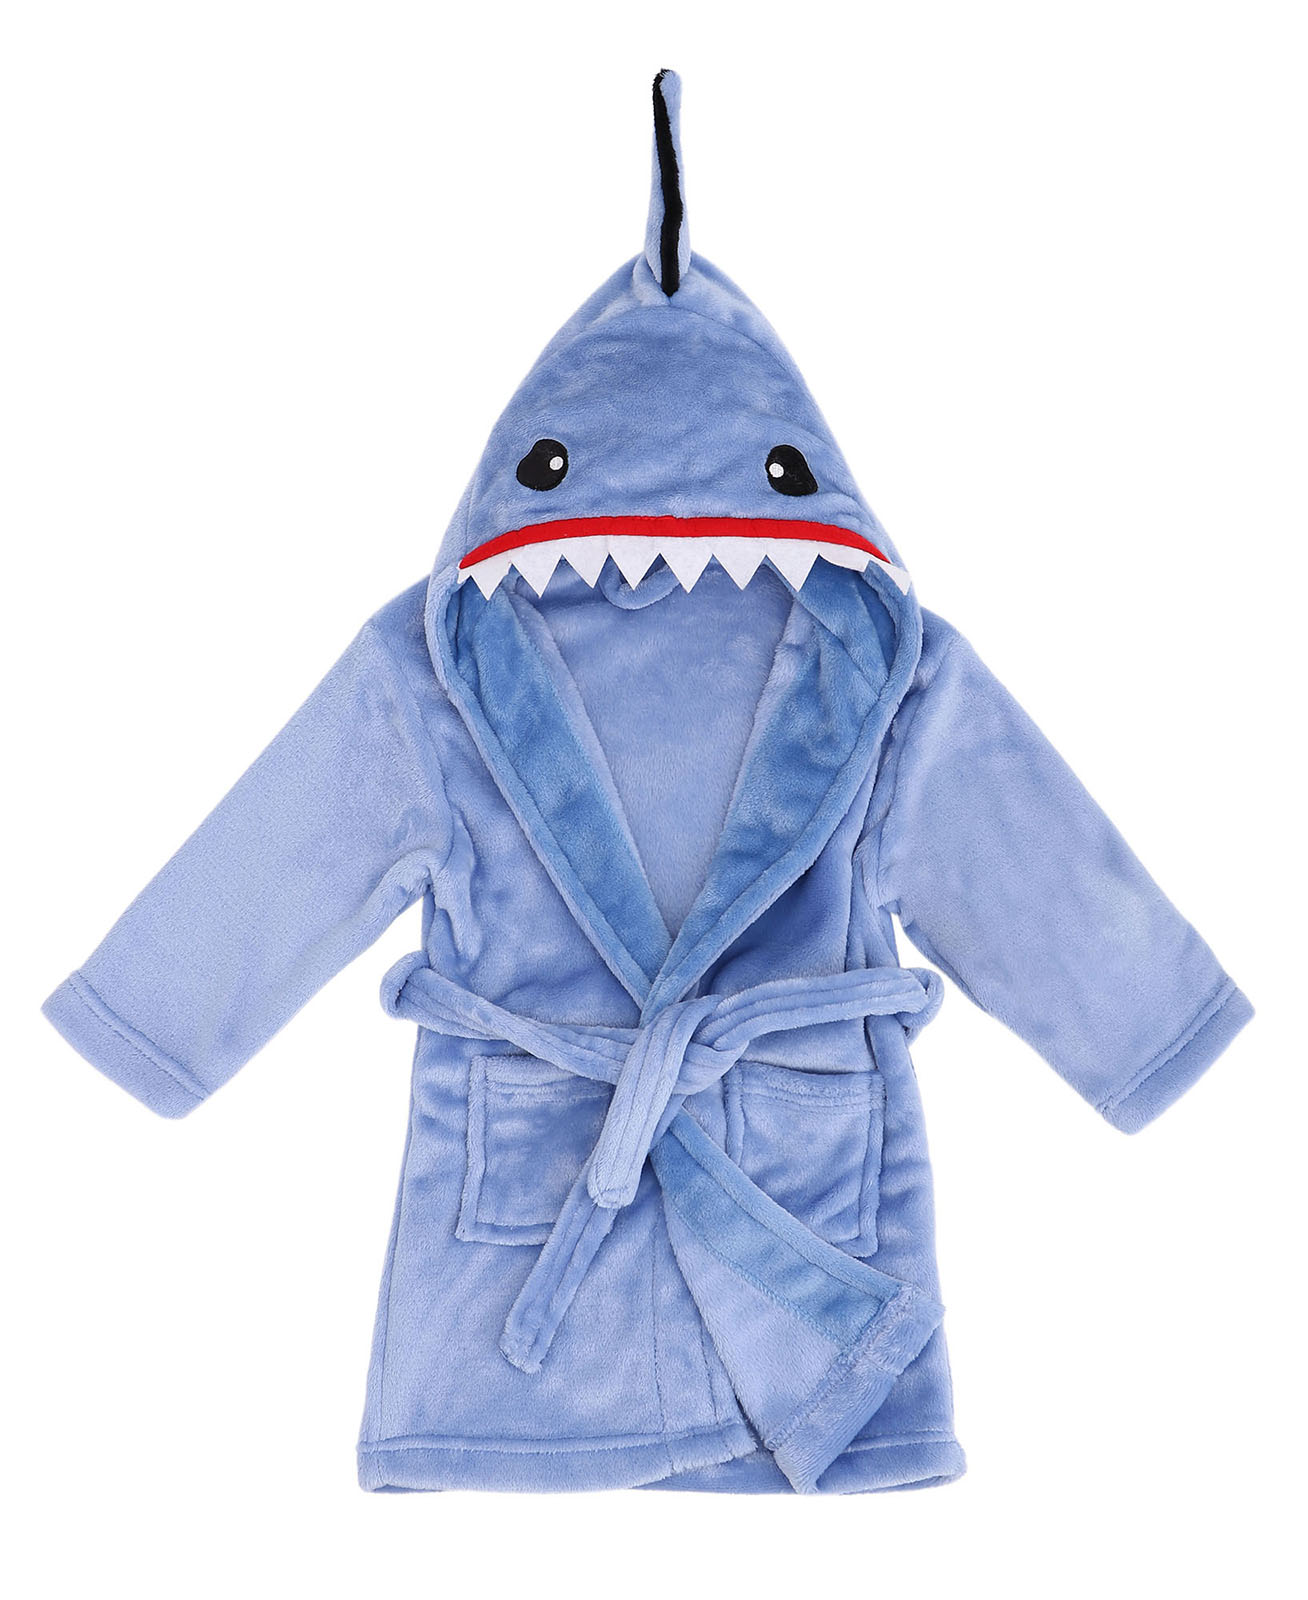 Animal Plush Robe with Hood Soft Hooded Terry Bathrobe,Shark Blue,XL(11-14 Years)